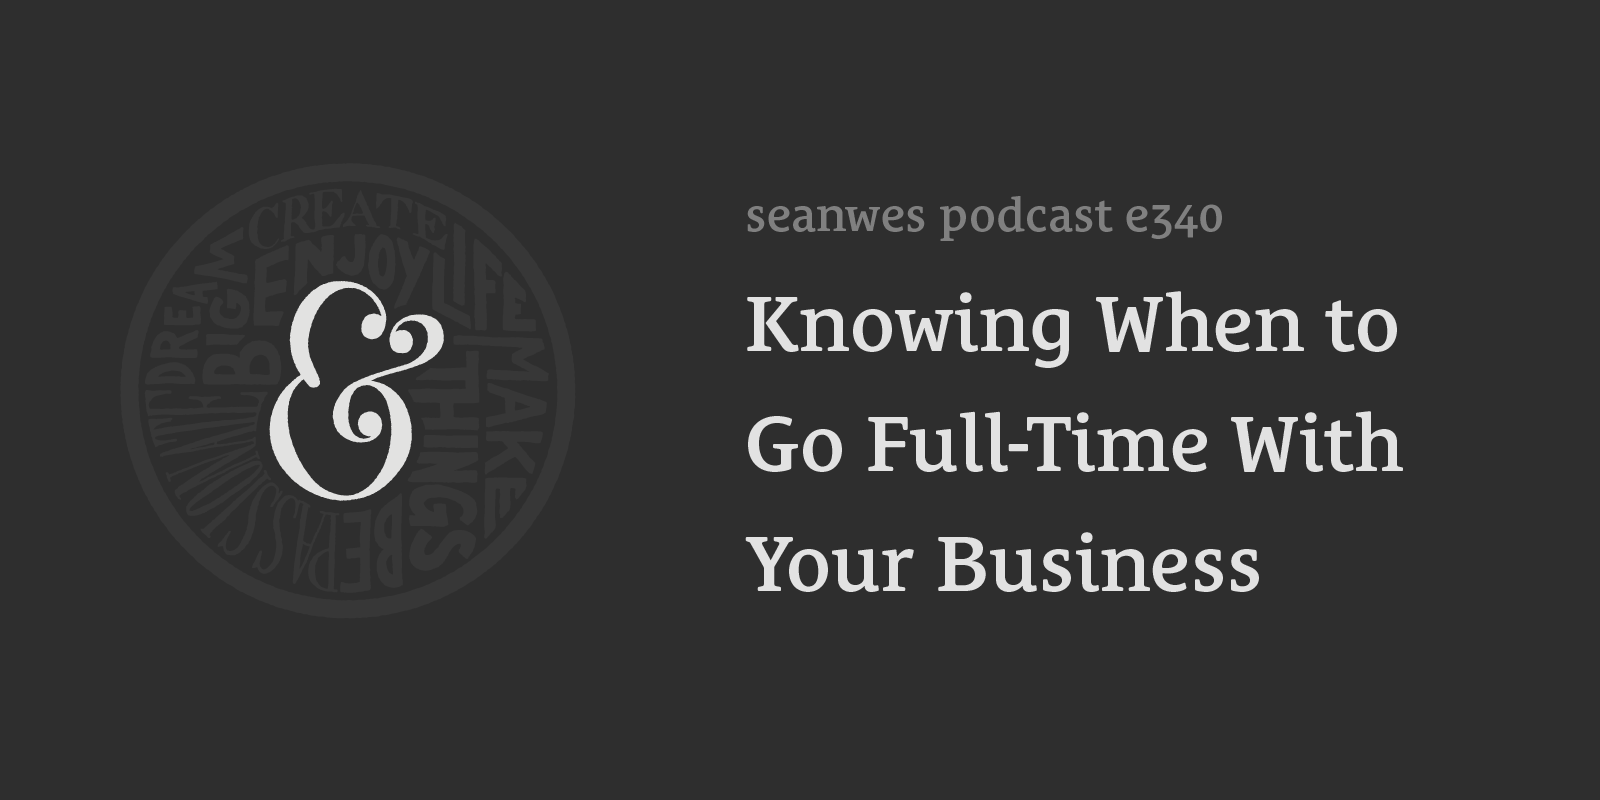 seanwes podcast 340: Knowing When to Go Full-Time With Your Business